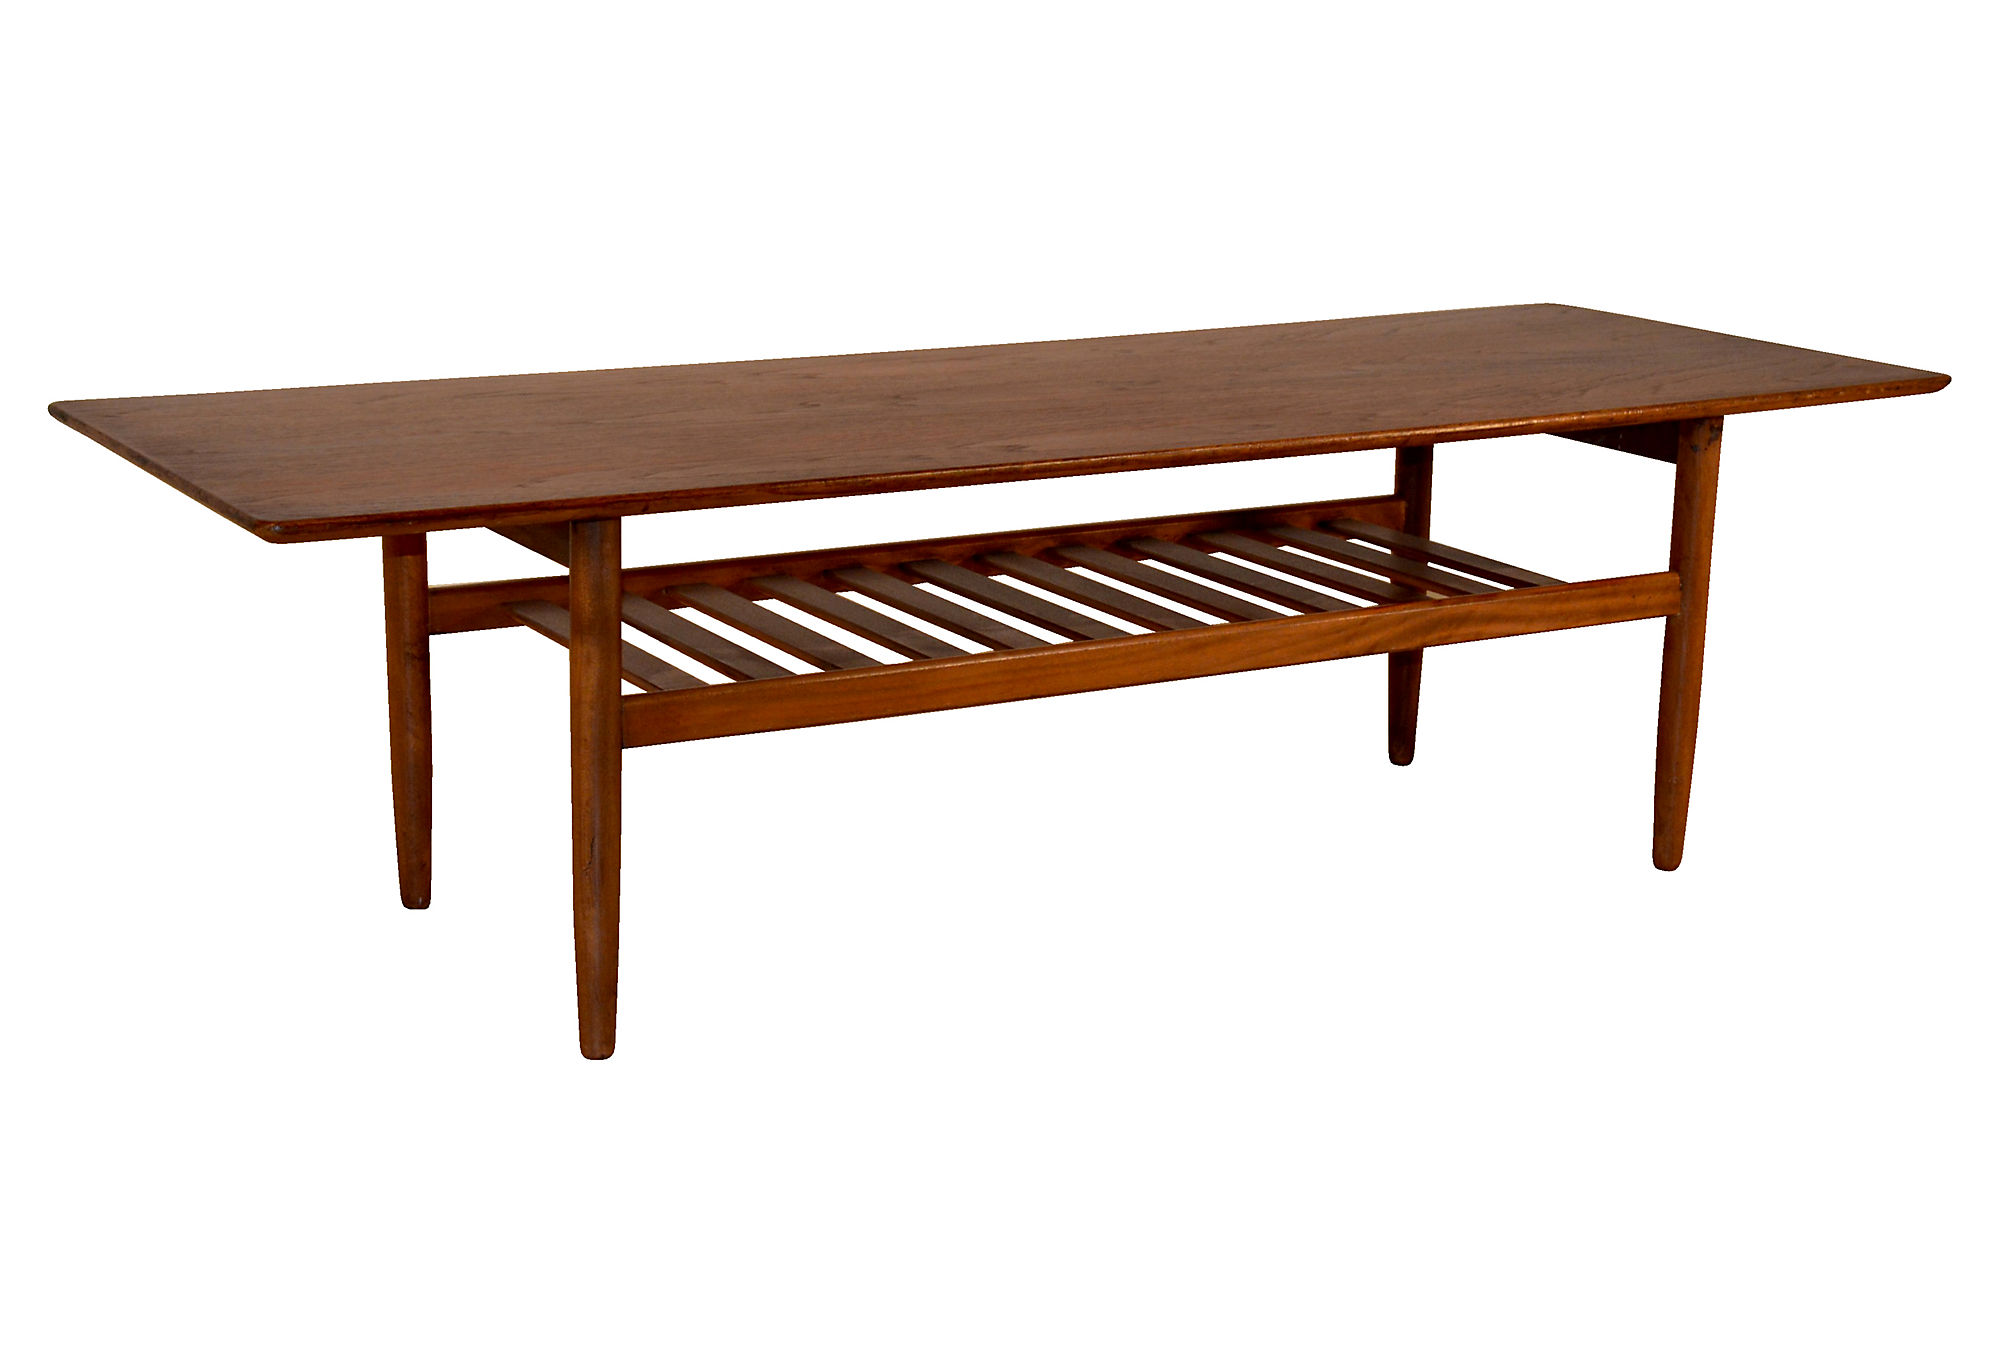 Bartol Reclaimed Pine Coffee Table by Pottery Barn